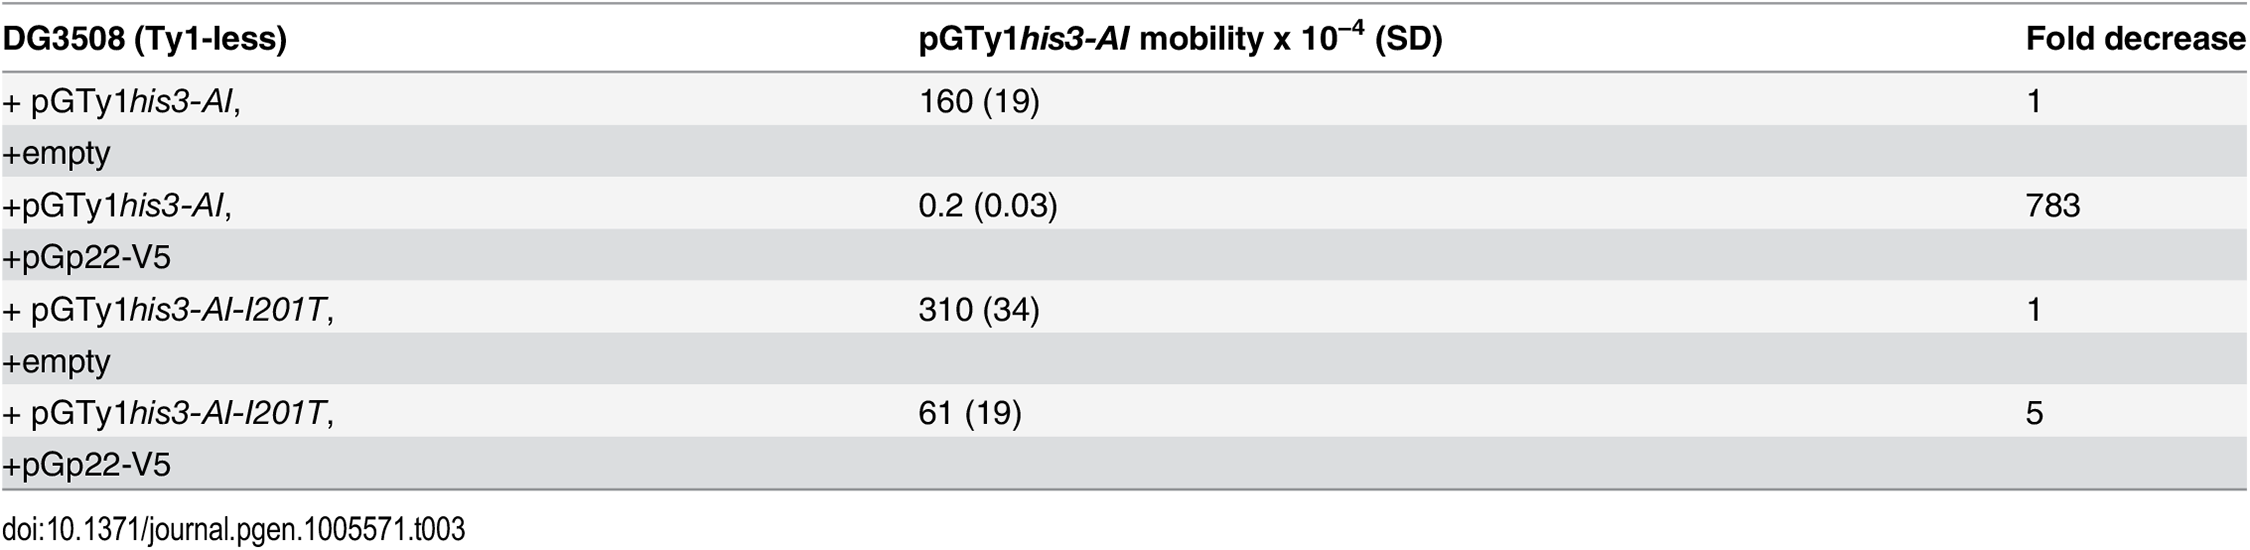 CNC-resistant pGTy1<i>his3-AI</i> mobility when co-expressed with p22-V5.